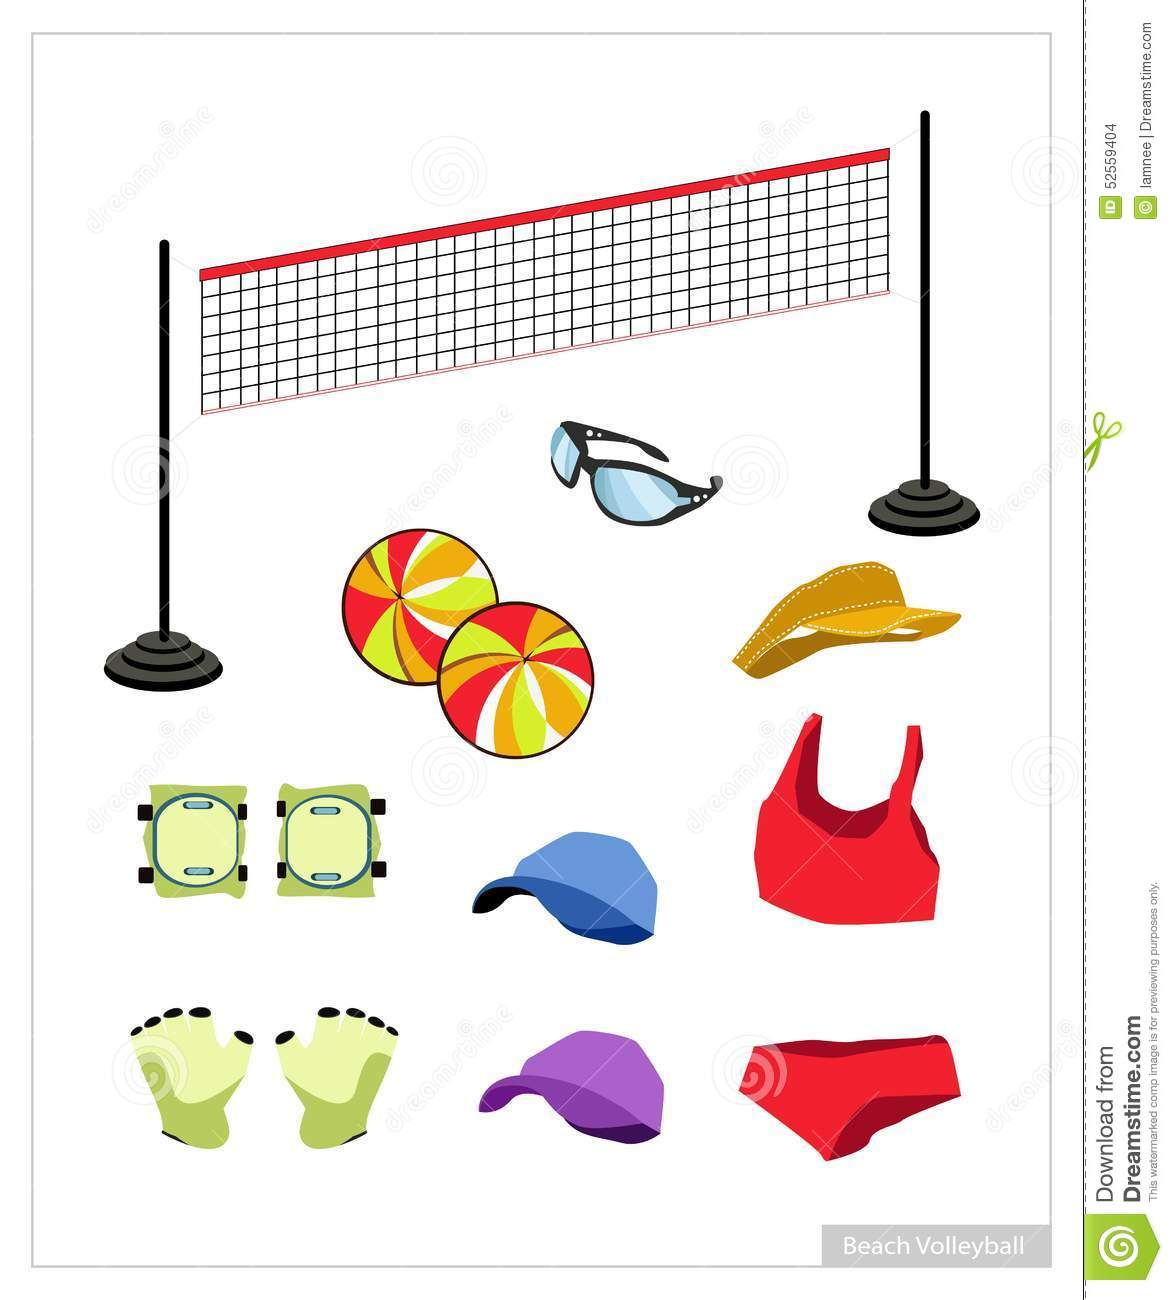 set of beach volleyball equipment on white background uniform clipart drawing uniform clipart police officer